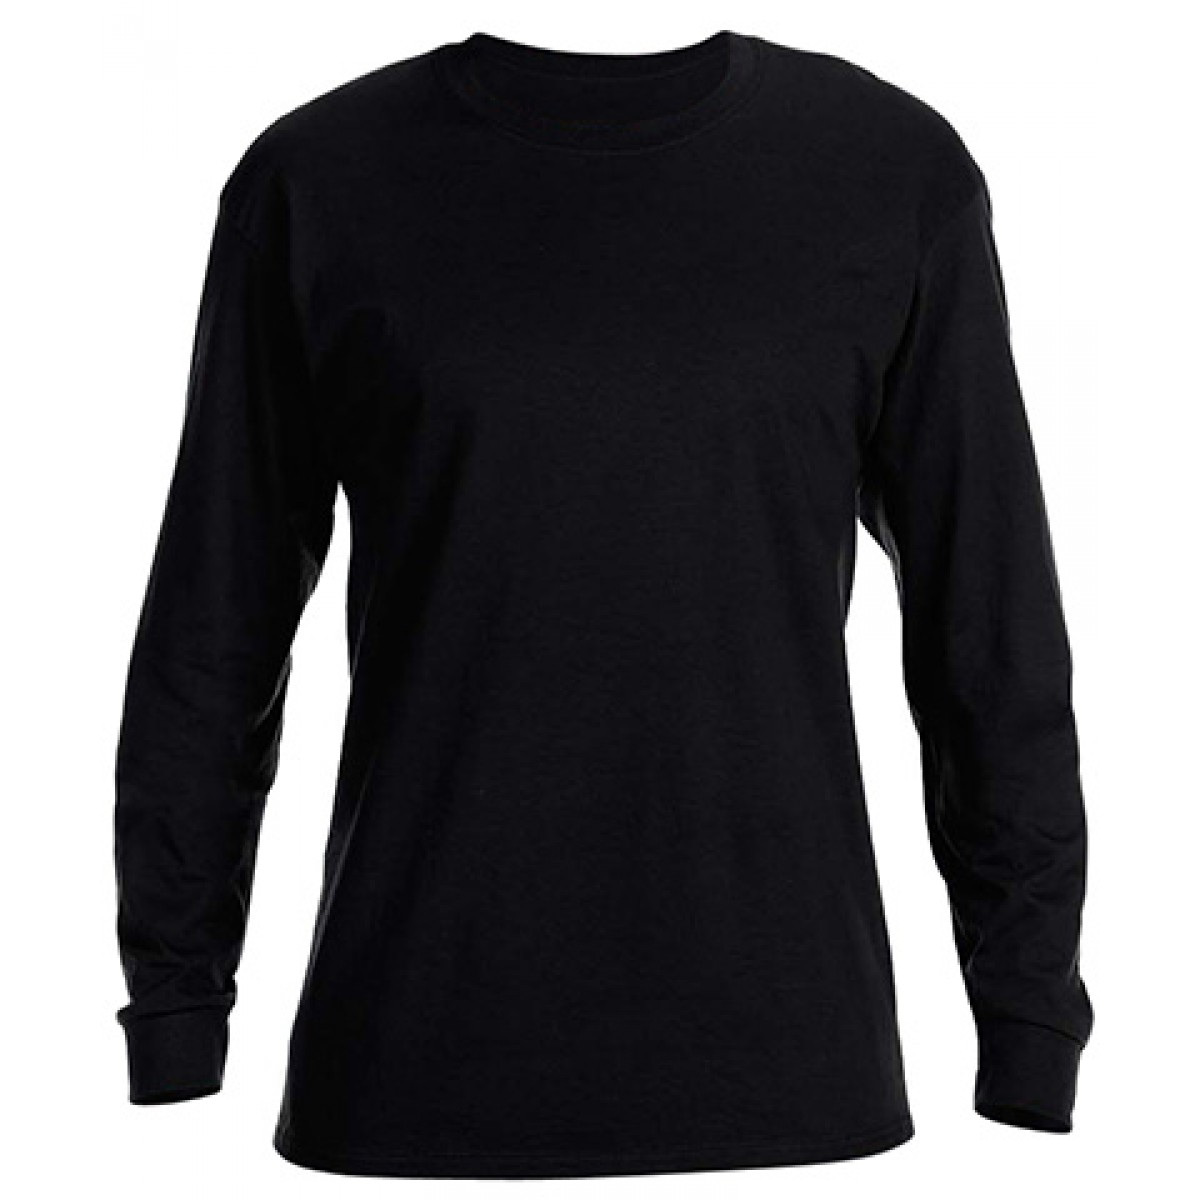 Basic Long Sleeve Crew Neck -Black-YL